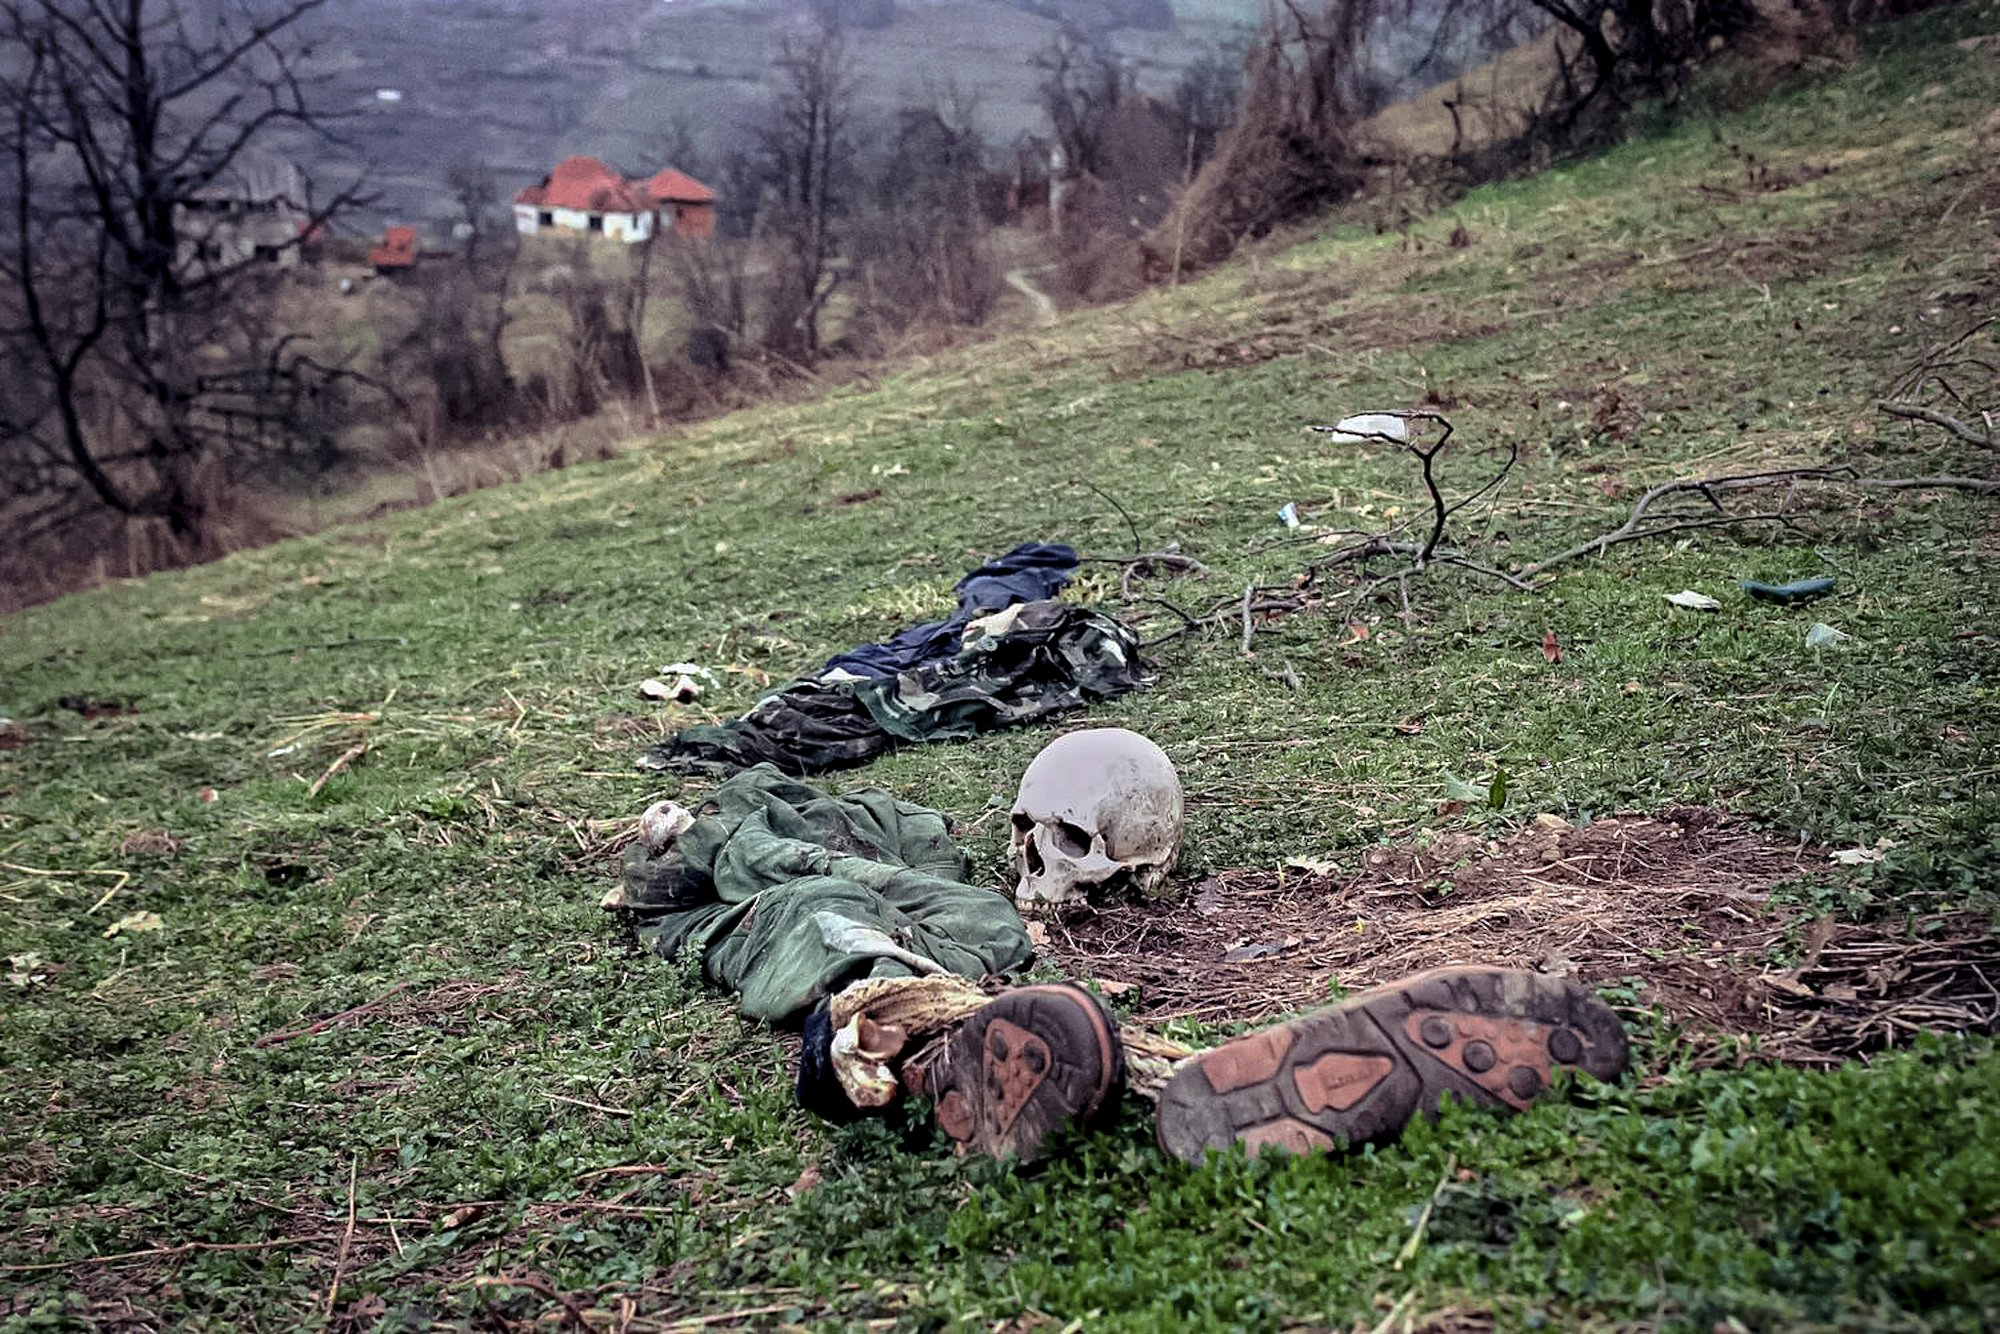 FILE- In this Tuesday, April 2, 1996, file photo, the remains of two bodies and pieces of clothing lie in a field at a suspected mass grave site in the village of Konjevic Polje, approximately 20km (12 miles), north west of Srebrenica.  Survivors of the genocide in the eastern Bosnian town of Srebrenica, mainly women, will on Saturday July 11, 2020, commemorate the 25th anniversary of the slaughter of their fathers and brothers, husbands and sons.  At least 8,000 mostly Muslim men and boys were chased through woods in and around Srebrenica by Serb troops in what is considered the worst carnage of civilians in Europe since World War II. The slaughter was also the only atrocity of the brutal war that has been confirmed an act of genocide.(AP Photo/Vadim Ghirda, File)